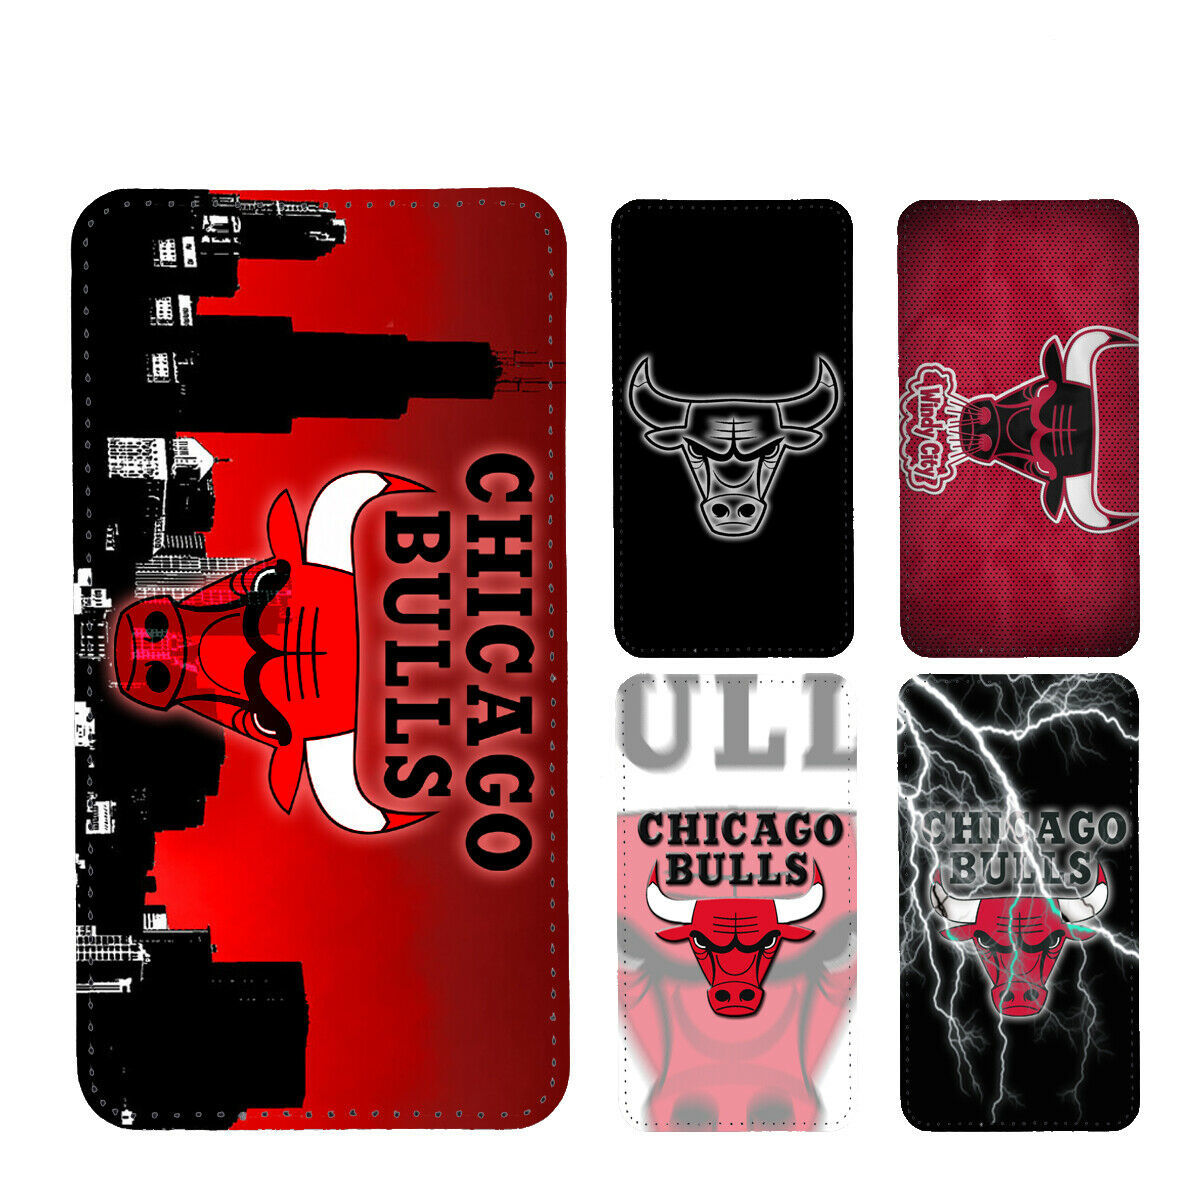 wallet case Chicago Bulls LG V30 V35  G6 G7 thinQ Google pixel XL 2 2XL 3XL - $17.99